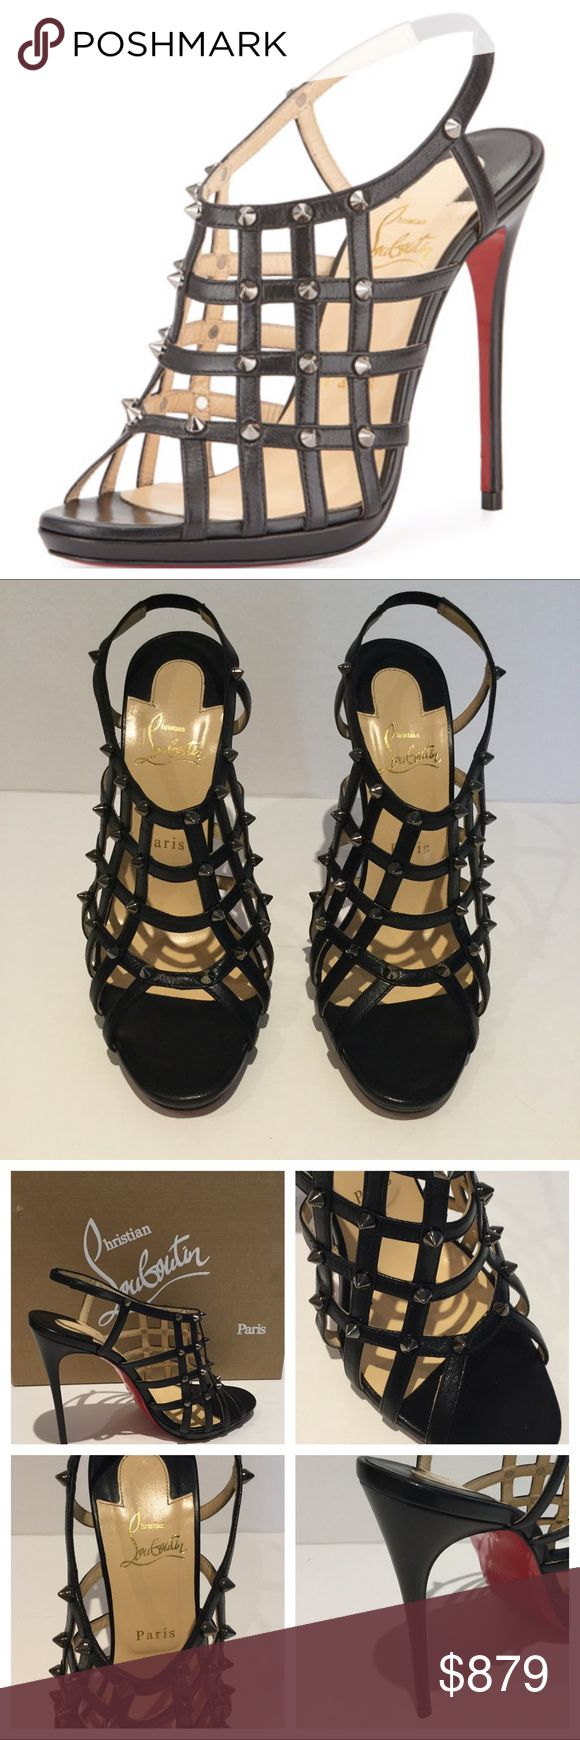 """CHRISTIAN LOUBOUTIN GUINIEVRE LEATHER SHOES. BRAND NEW W/ TAGS  Christian Louboutin leather sandal with gunmetal spike studs throughout latticework design. 4.7"""" covered heel; 0.5"""" double platform lowers pitch to 4.2"""". EU Size 40.  Dust bag / Box.  Open toe.  Strappy caged upper. Halter ankle-wrap strap with stretch inset. Slip-on style. Signature red leather outsole. Made in Italy.  SMOKE / PET FREE ENVIRONMENT Christian Louboutin Shoes"""